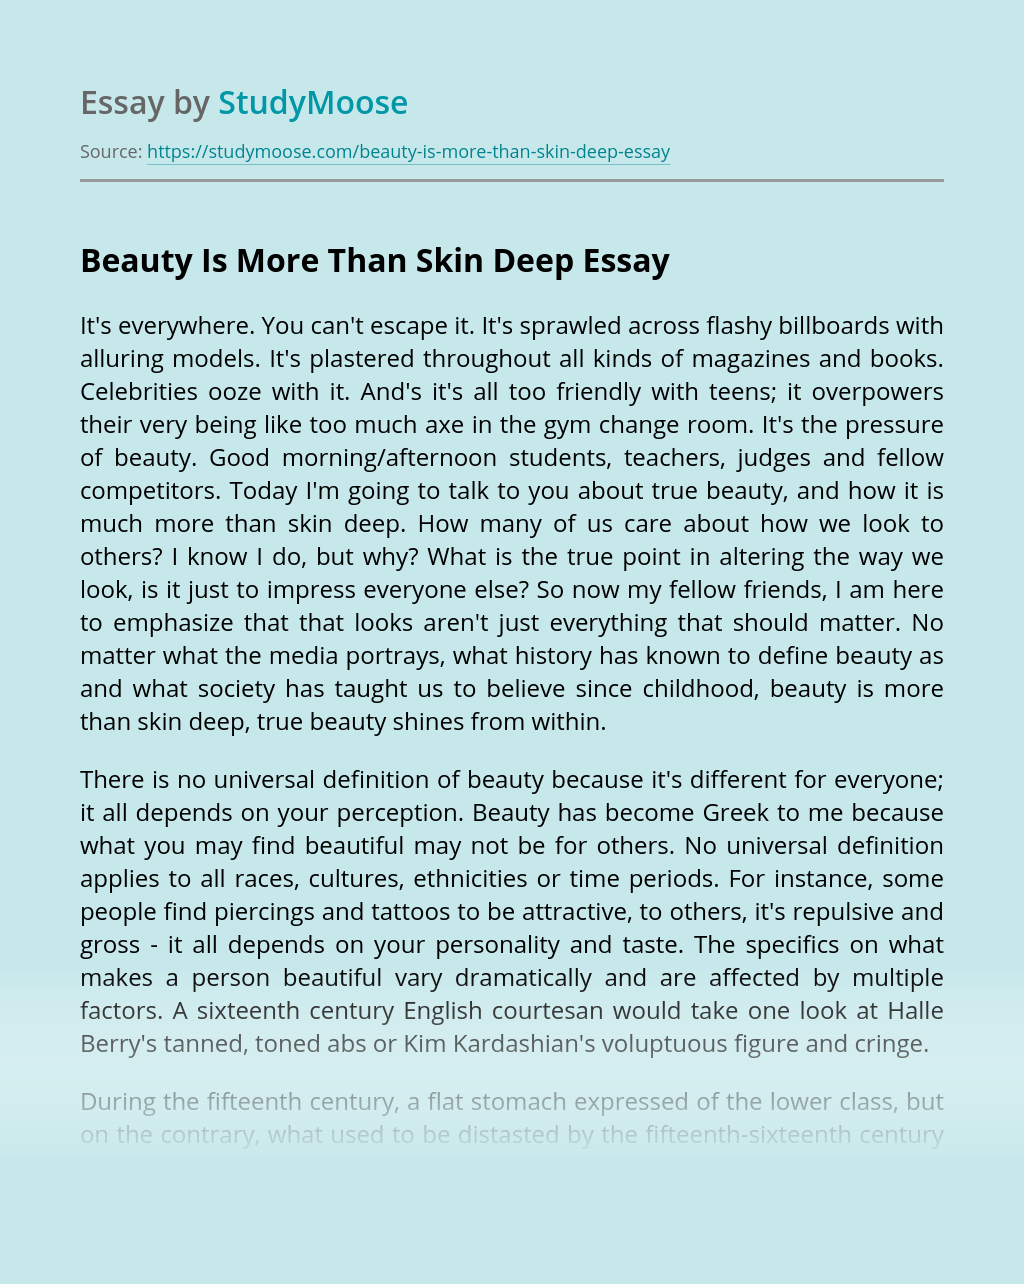 Beauty Is More Than Skin Deep